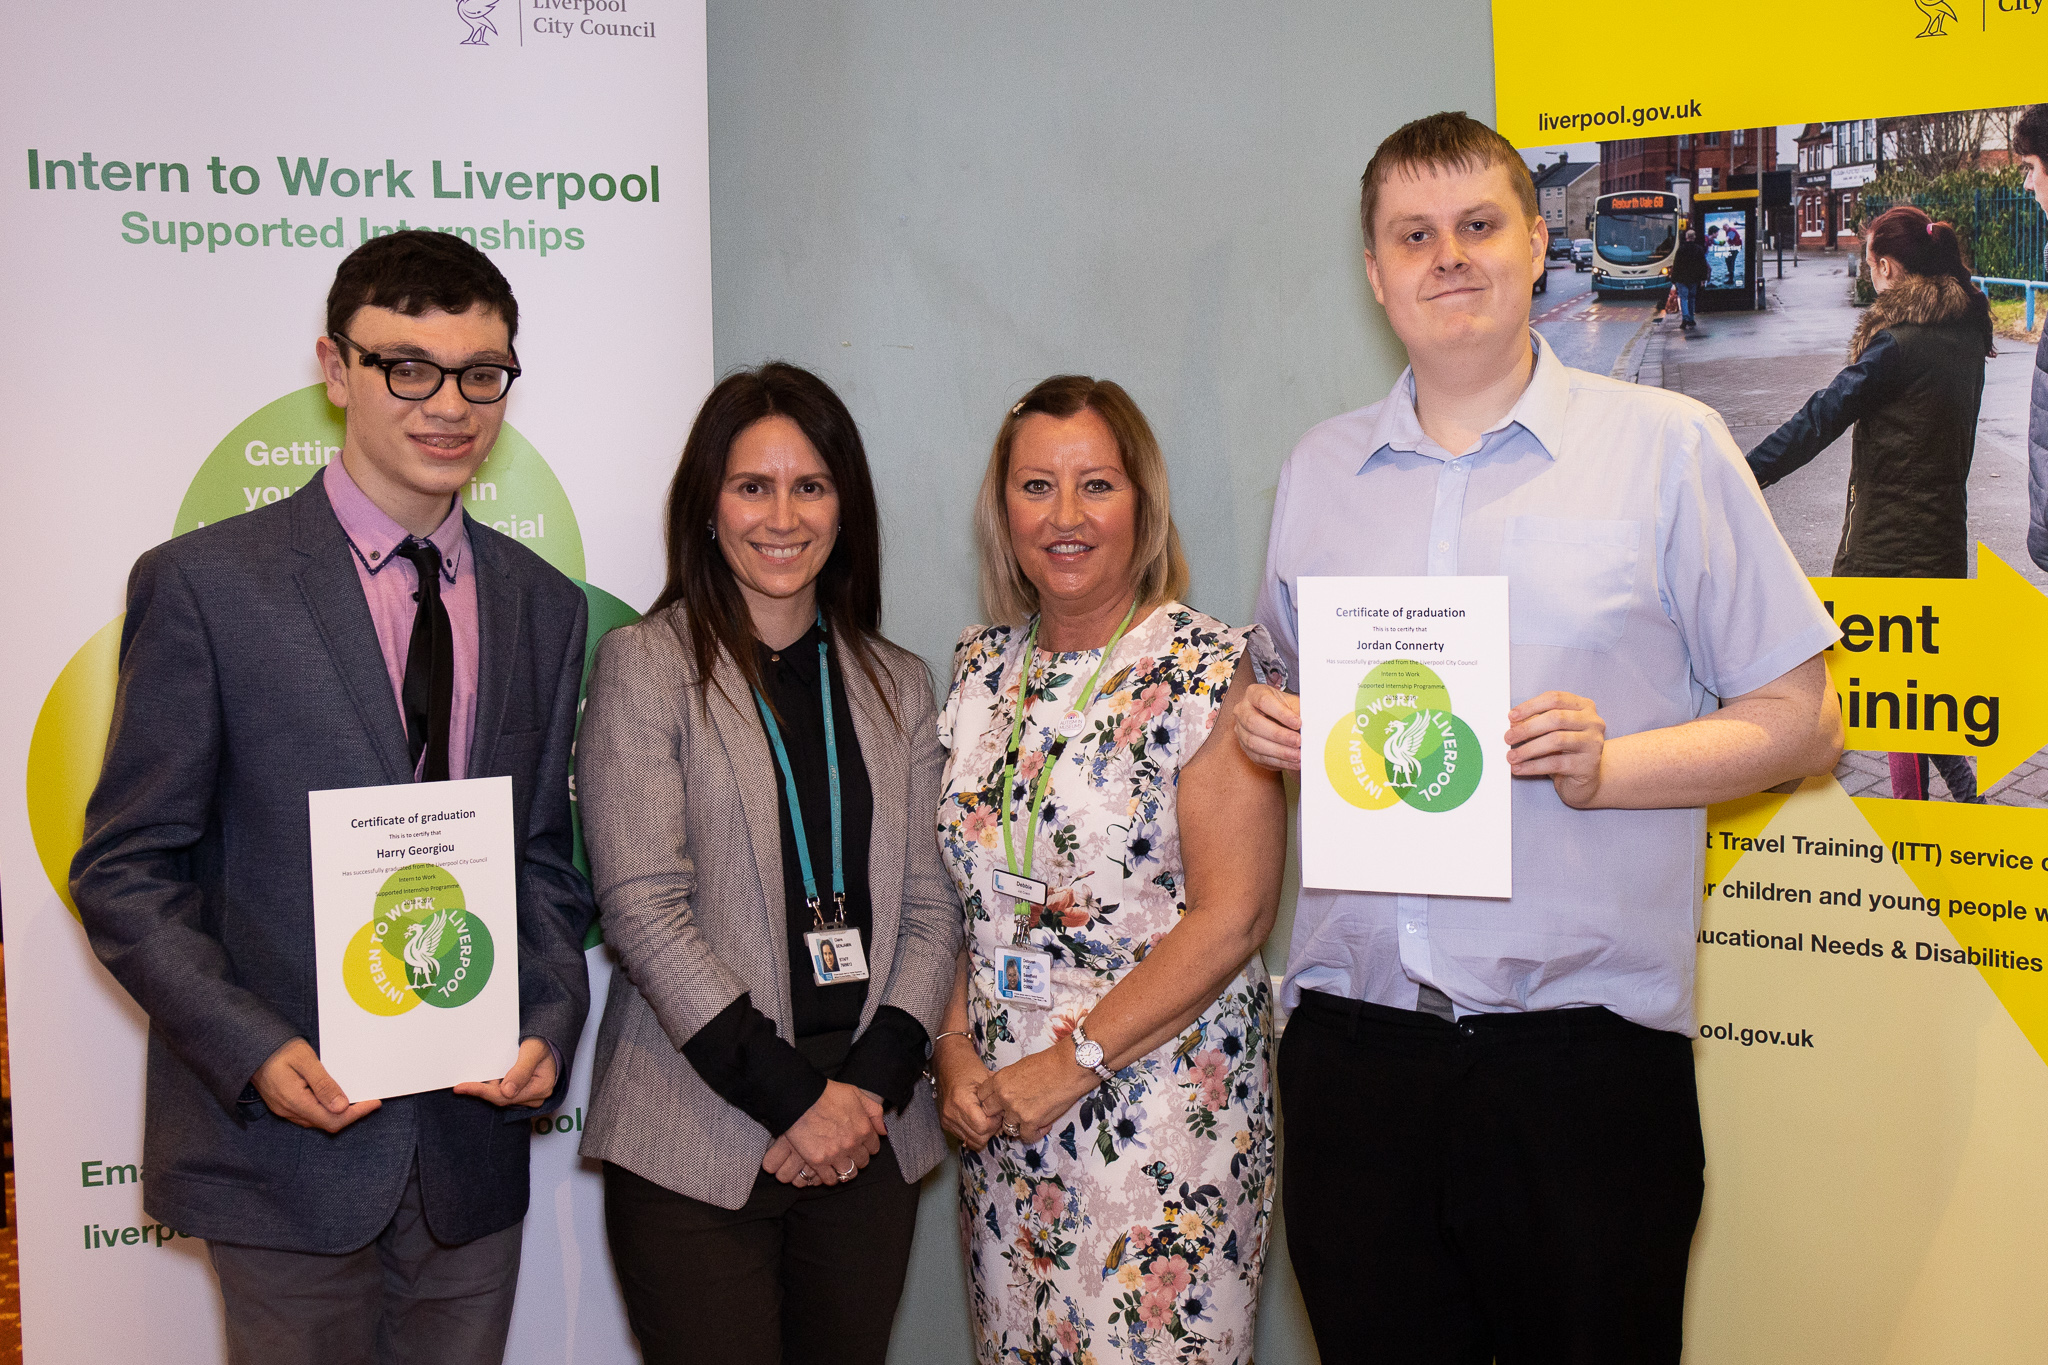 Harry and Jordan, supported interns from Sandfield Park School and Greenbank College based at National Museums Liverpool. With Claire Benjamin from National Museums Liverpool and Debbie Fox their job coach.